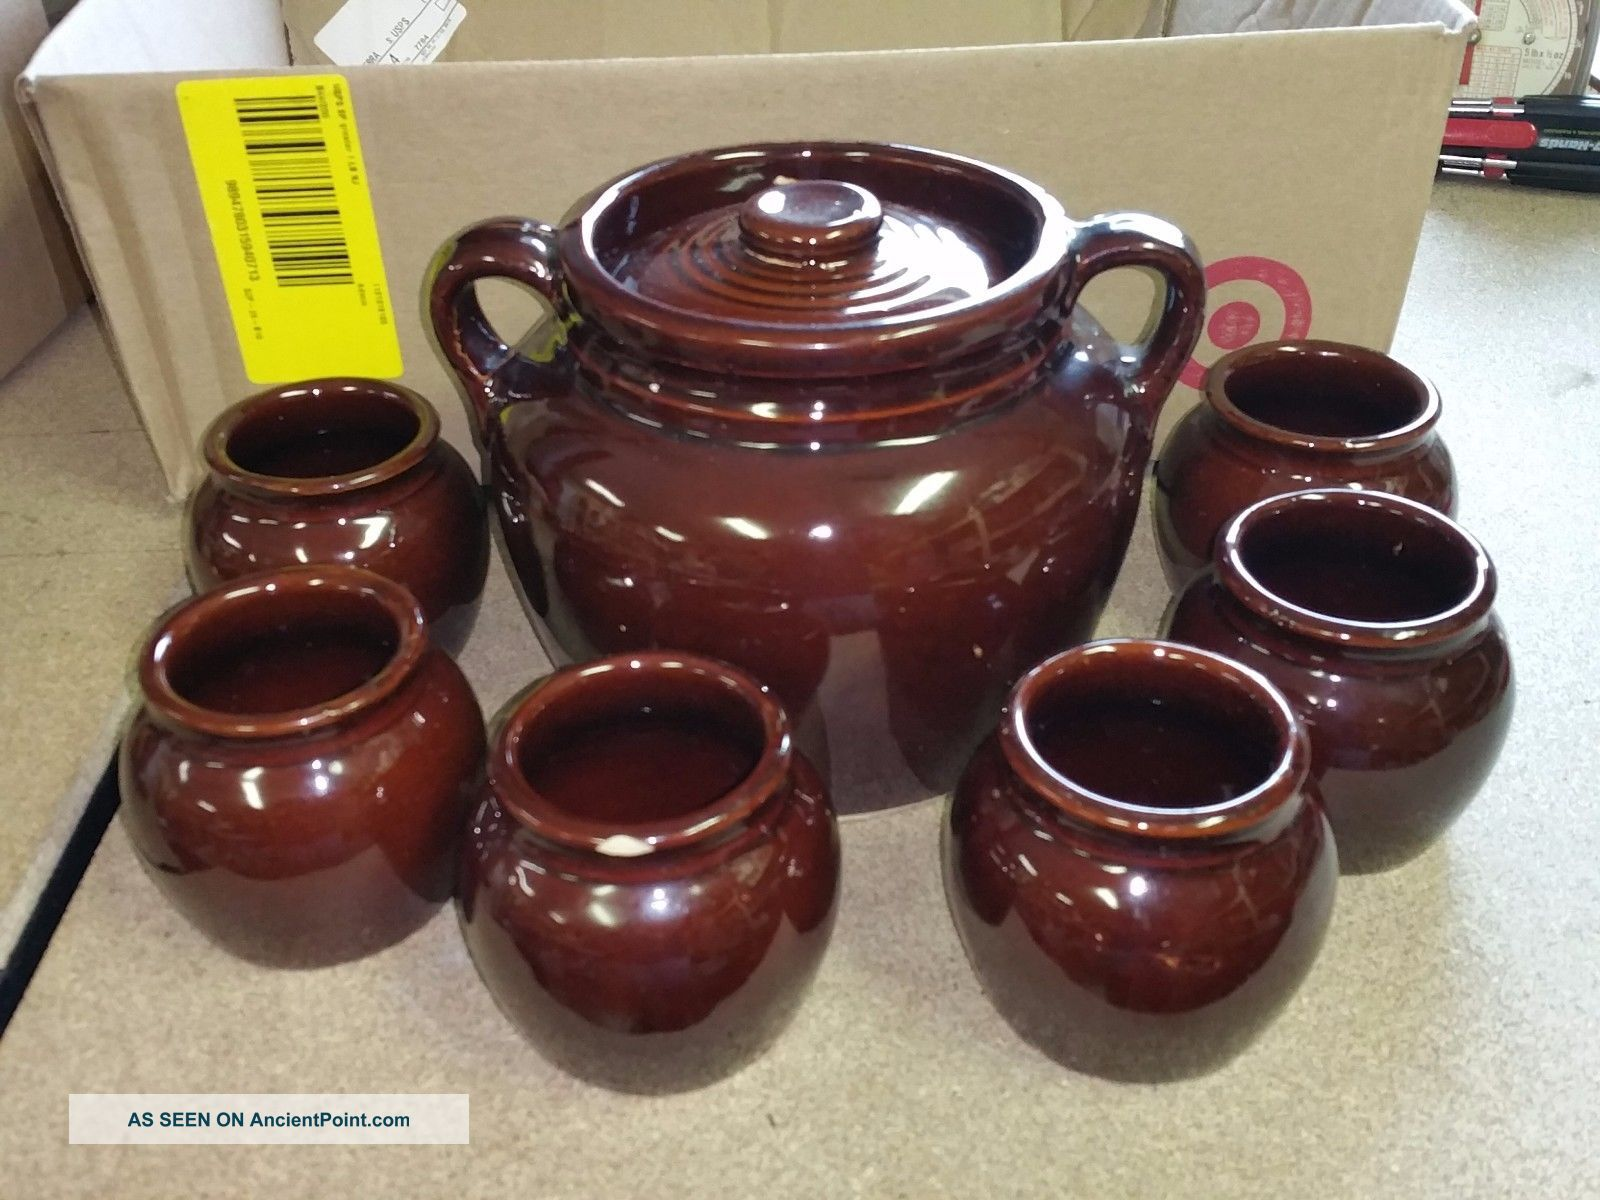 Brown Glaze Crock Bean Pot W/ Lid - Double Handles - Usa W/ 6 Individual Crocks Crocks photo